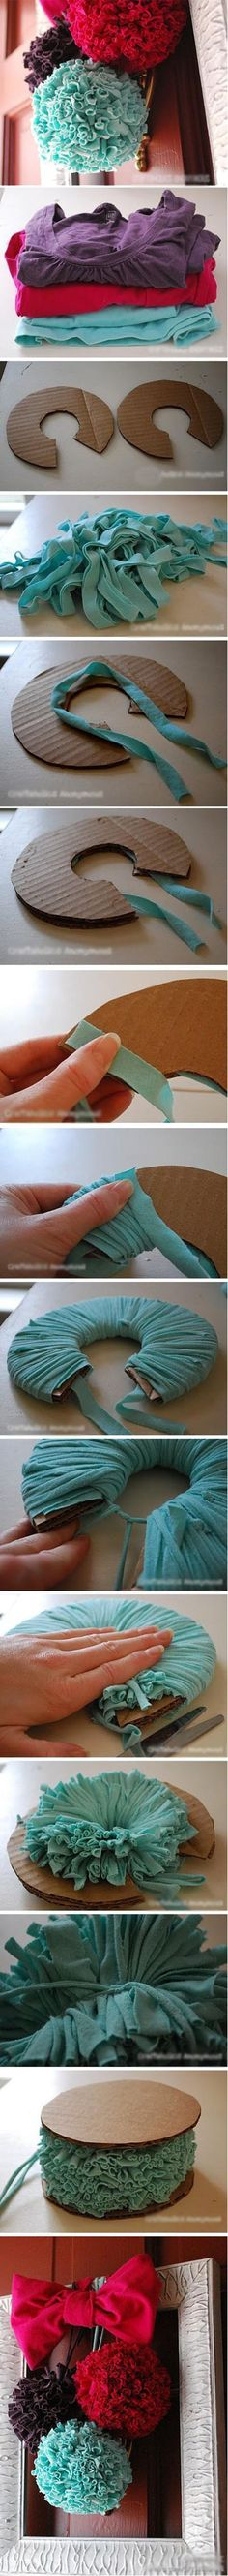 Diy Beautiful Decoration | Click to see More DIY & Crafts Tutorials on Our Site.